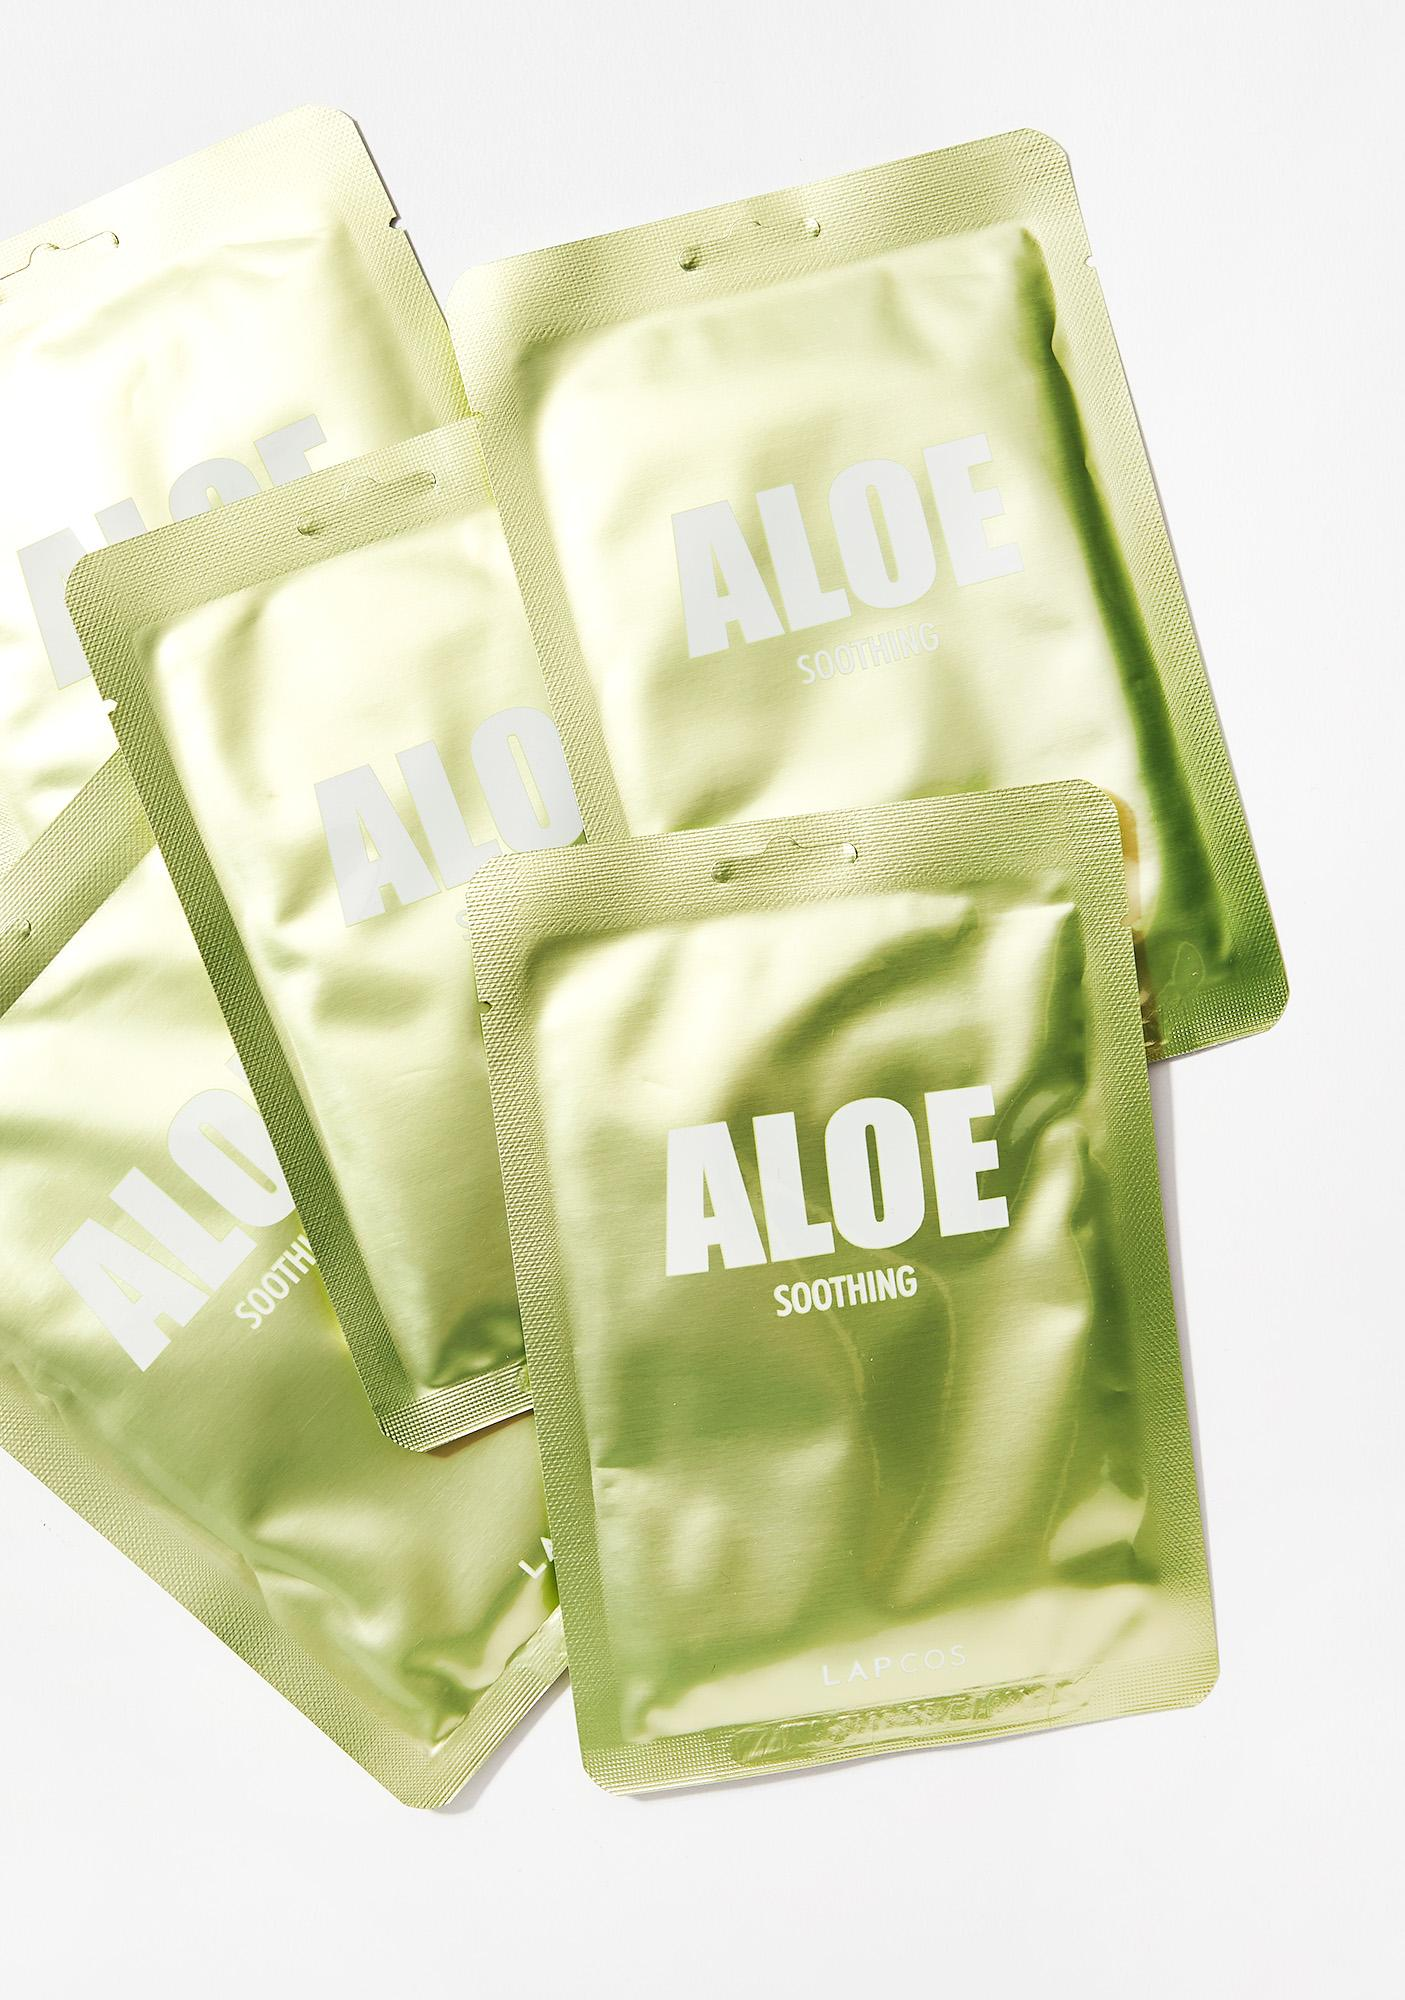 LAPCOS Aloe Soothing Mask Set of 5